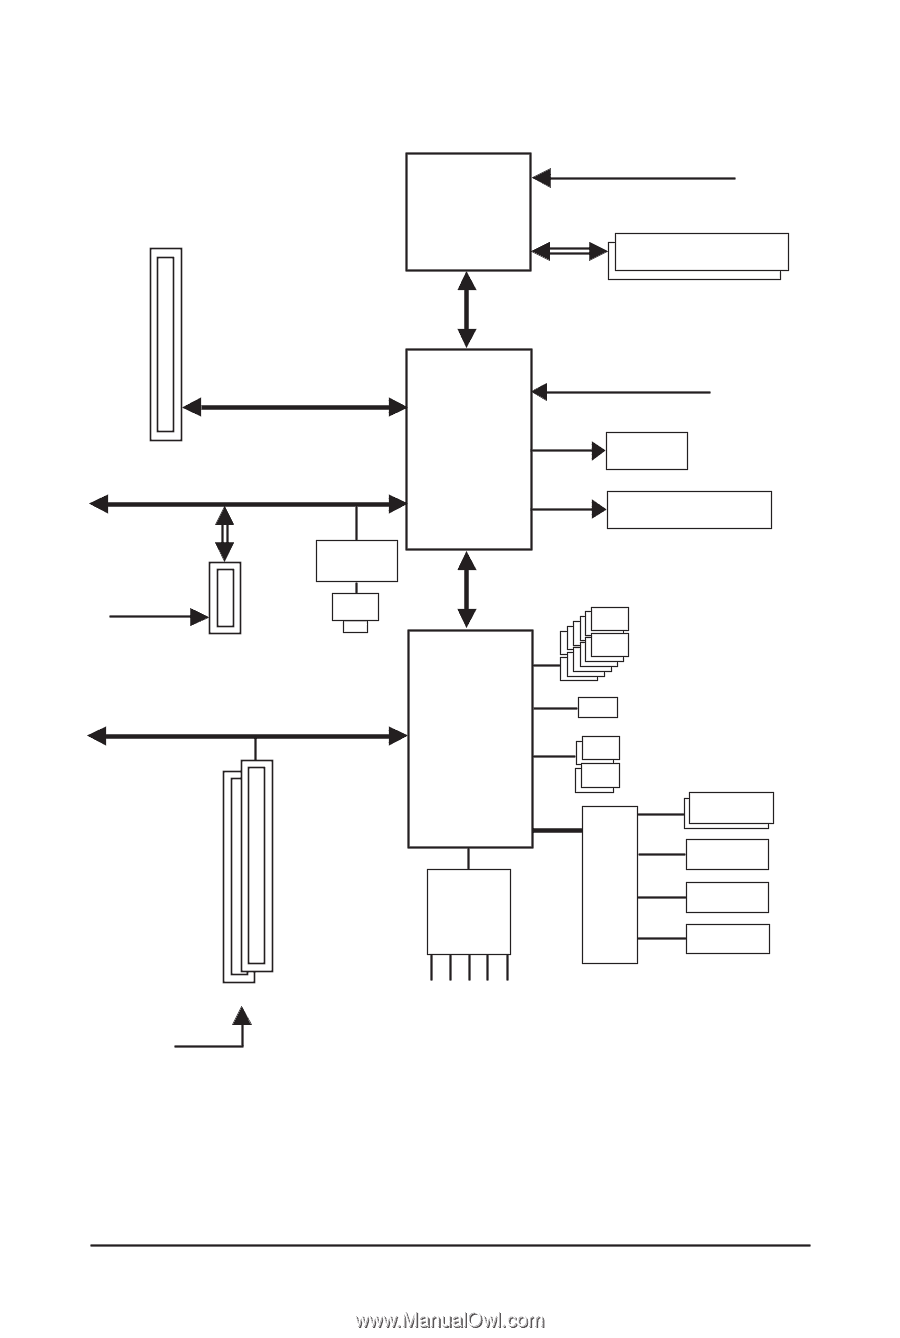 8 -. Block Diagram. j. Only for GA-MA74GM-S2H